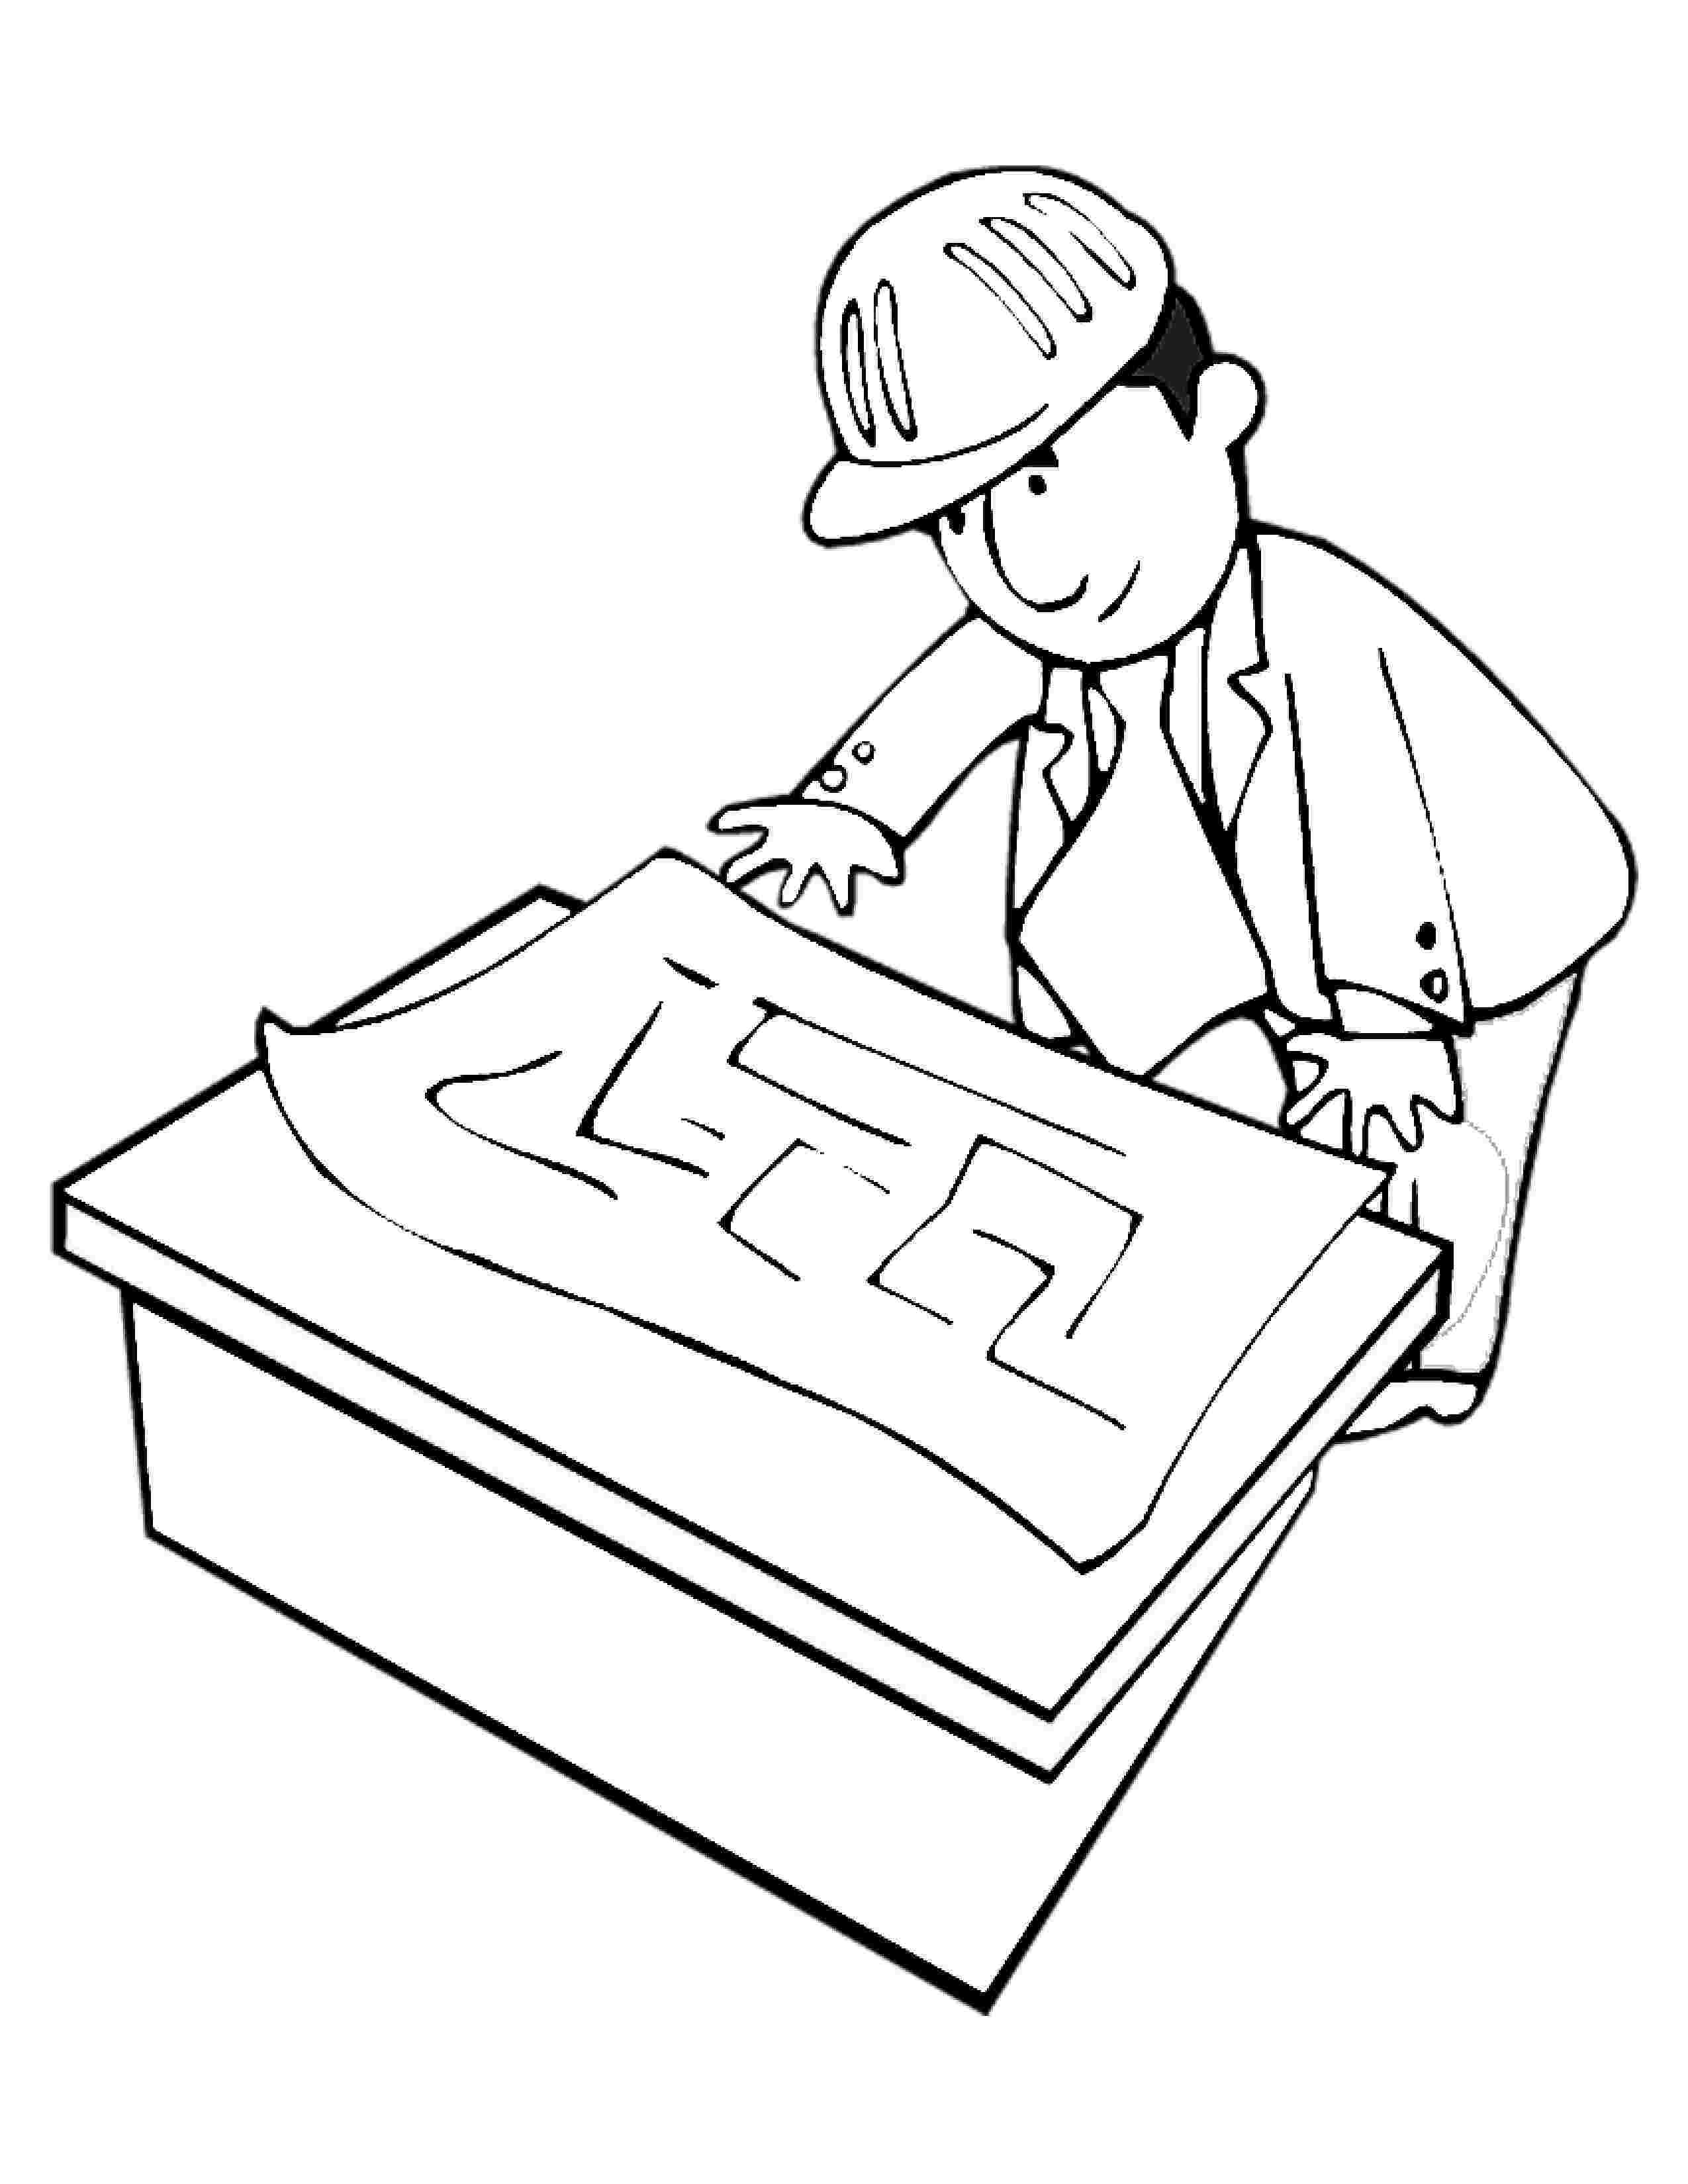 construction equipment coloring pages digging free construction coloring pages excavator construction pages coloring equipment